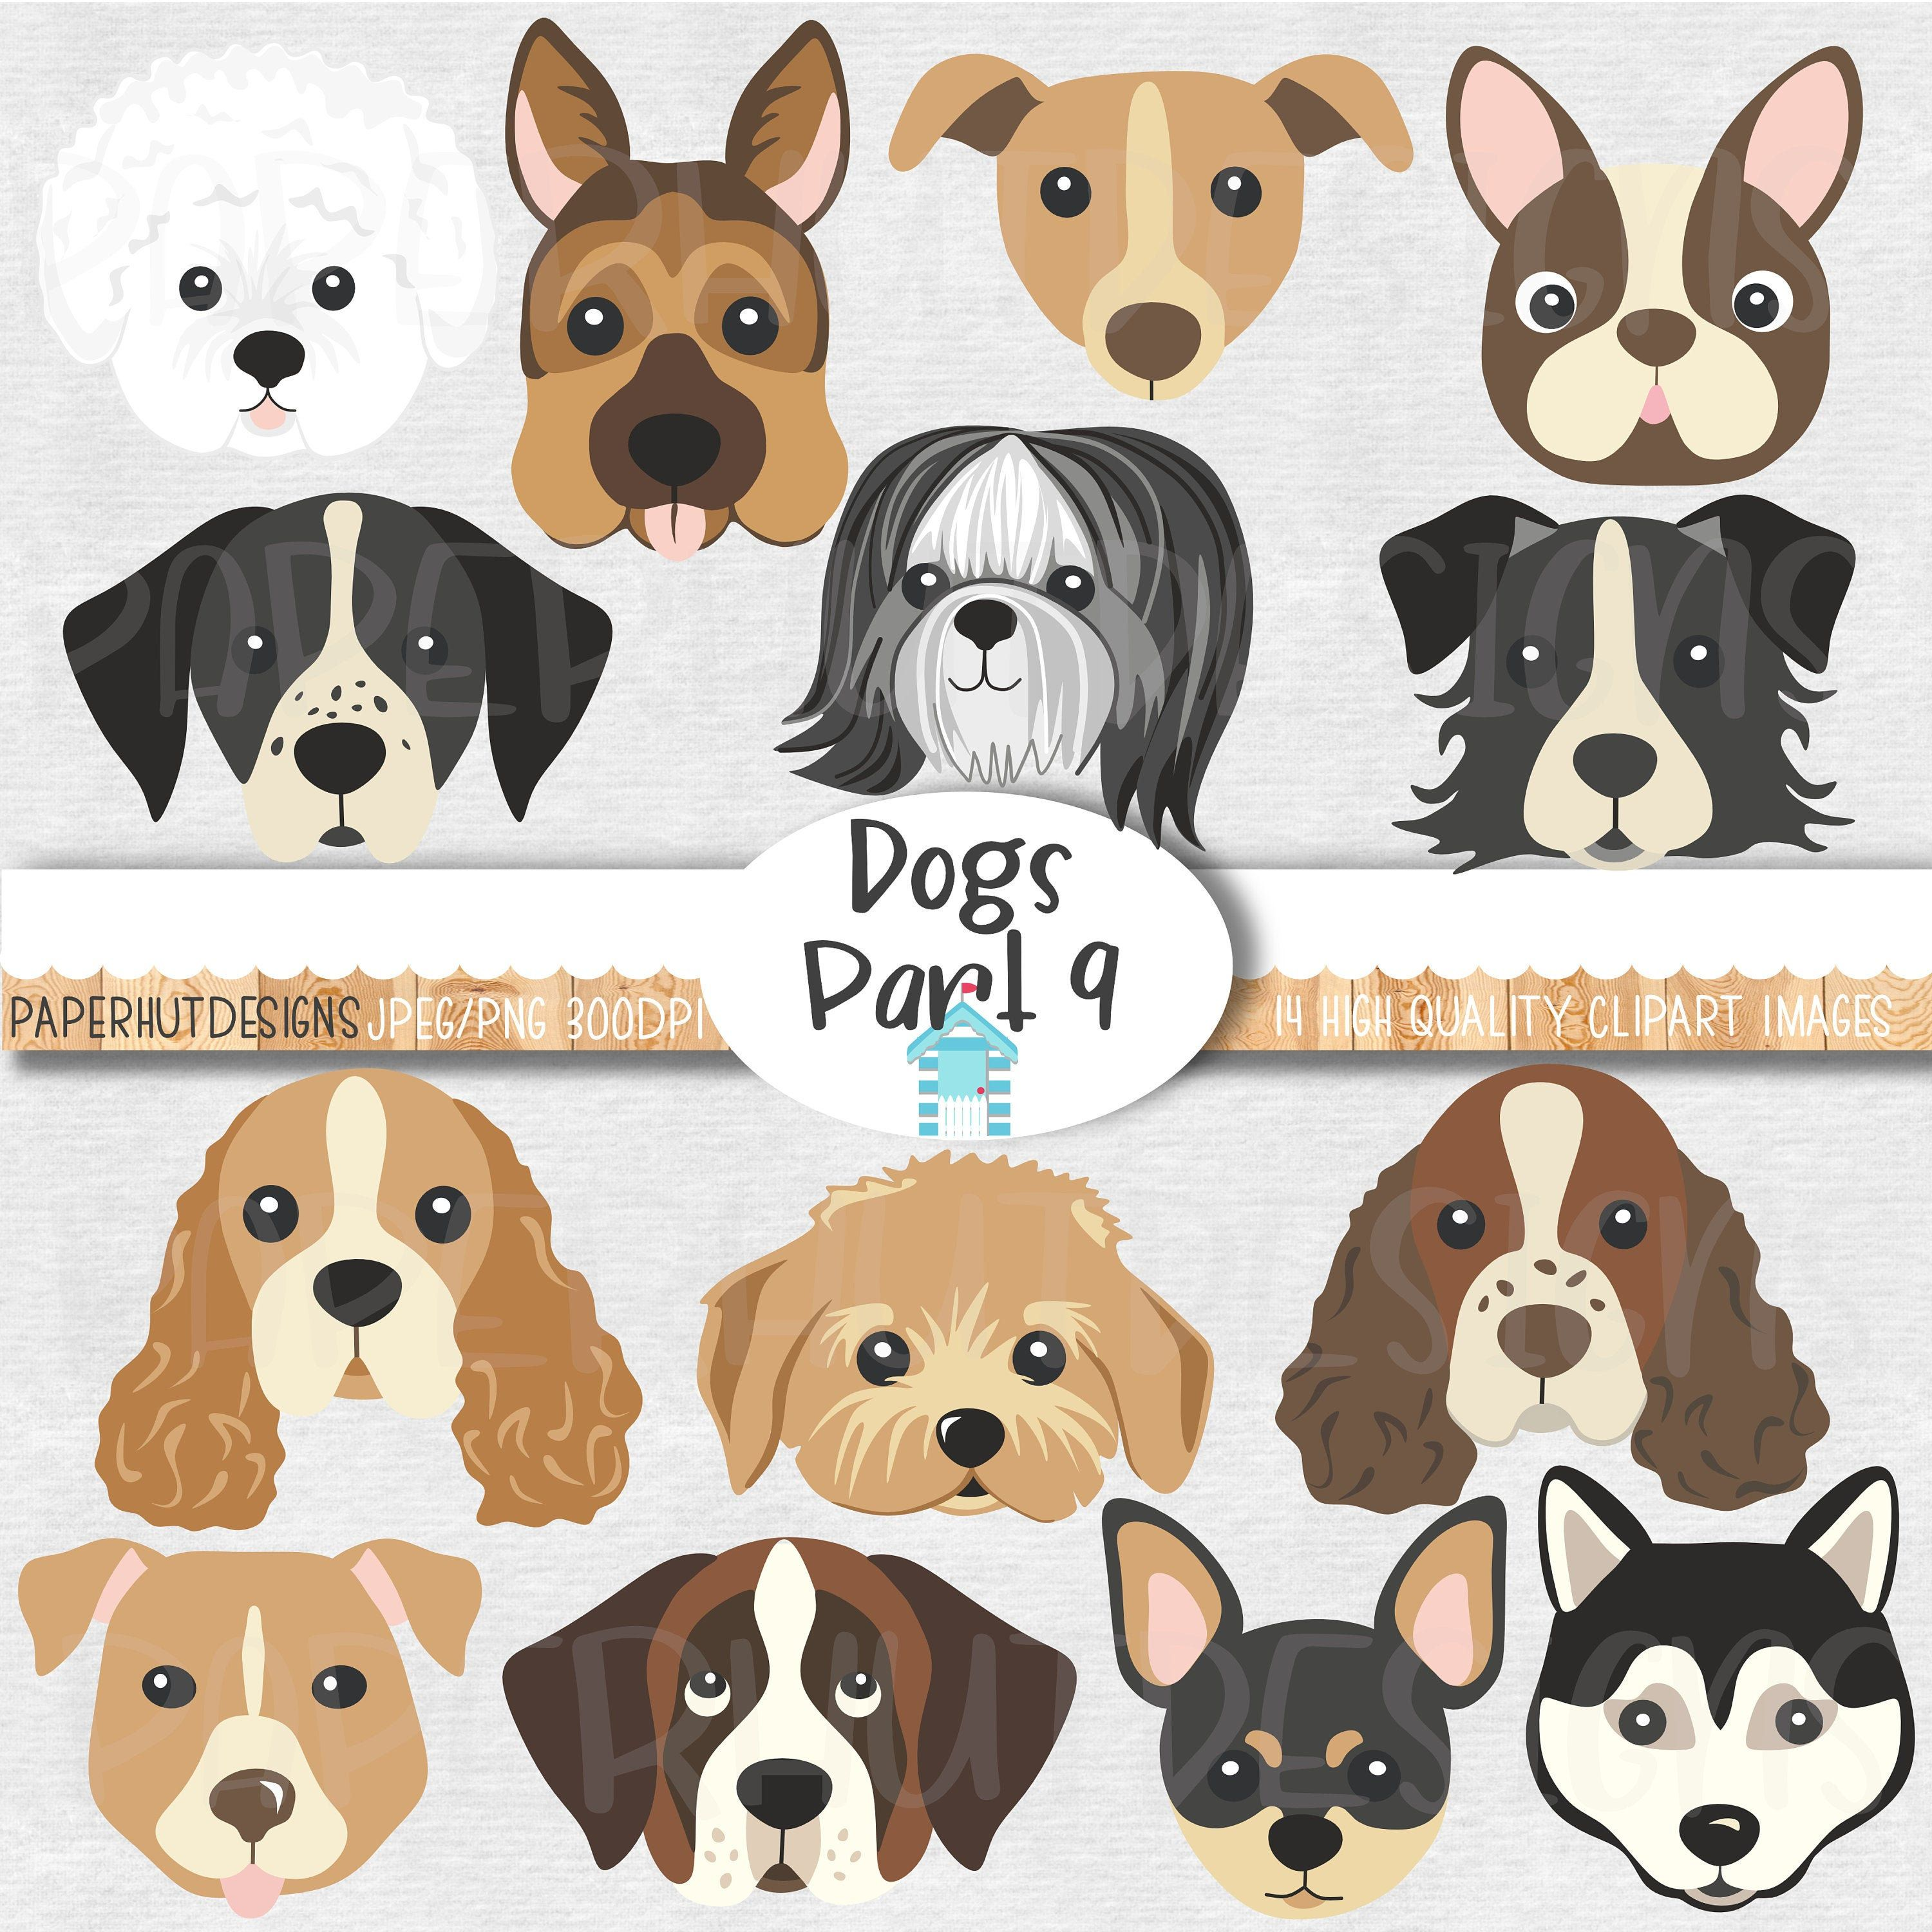 Dog Faces Clipart Cute Puppy Faces Clipart Dog Clip Art Puppy Clipart Dogs Faces Dog Digital Dog Images Digital Graphics Bu Dog Clip Art Puppy Clipart Dog Face